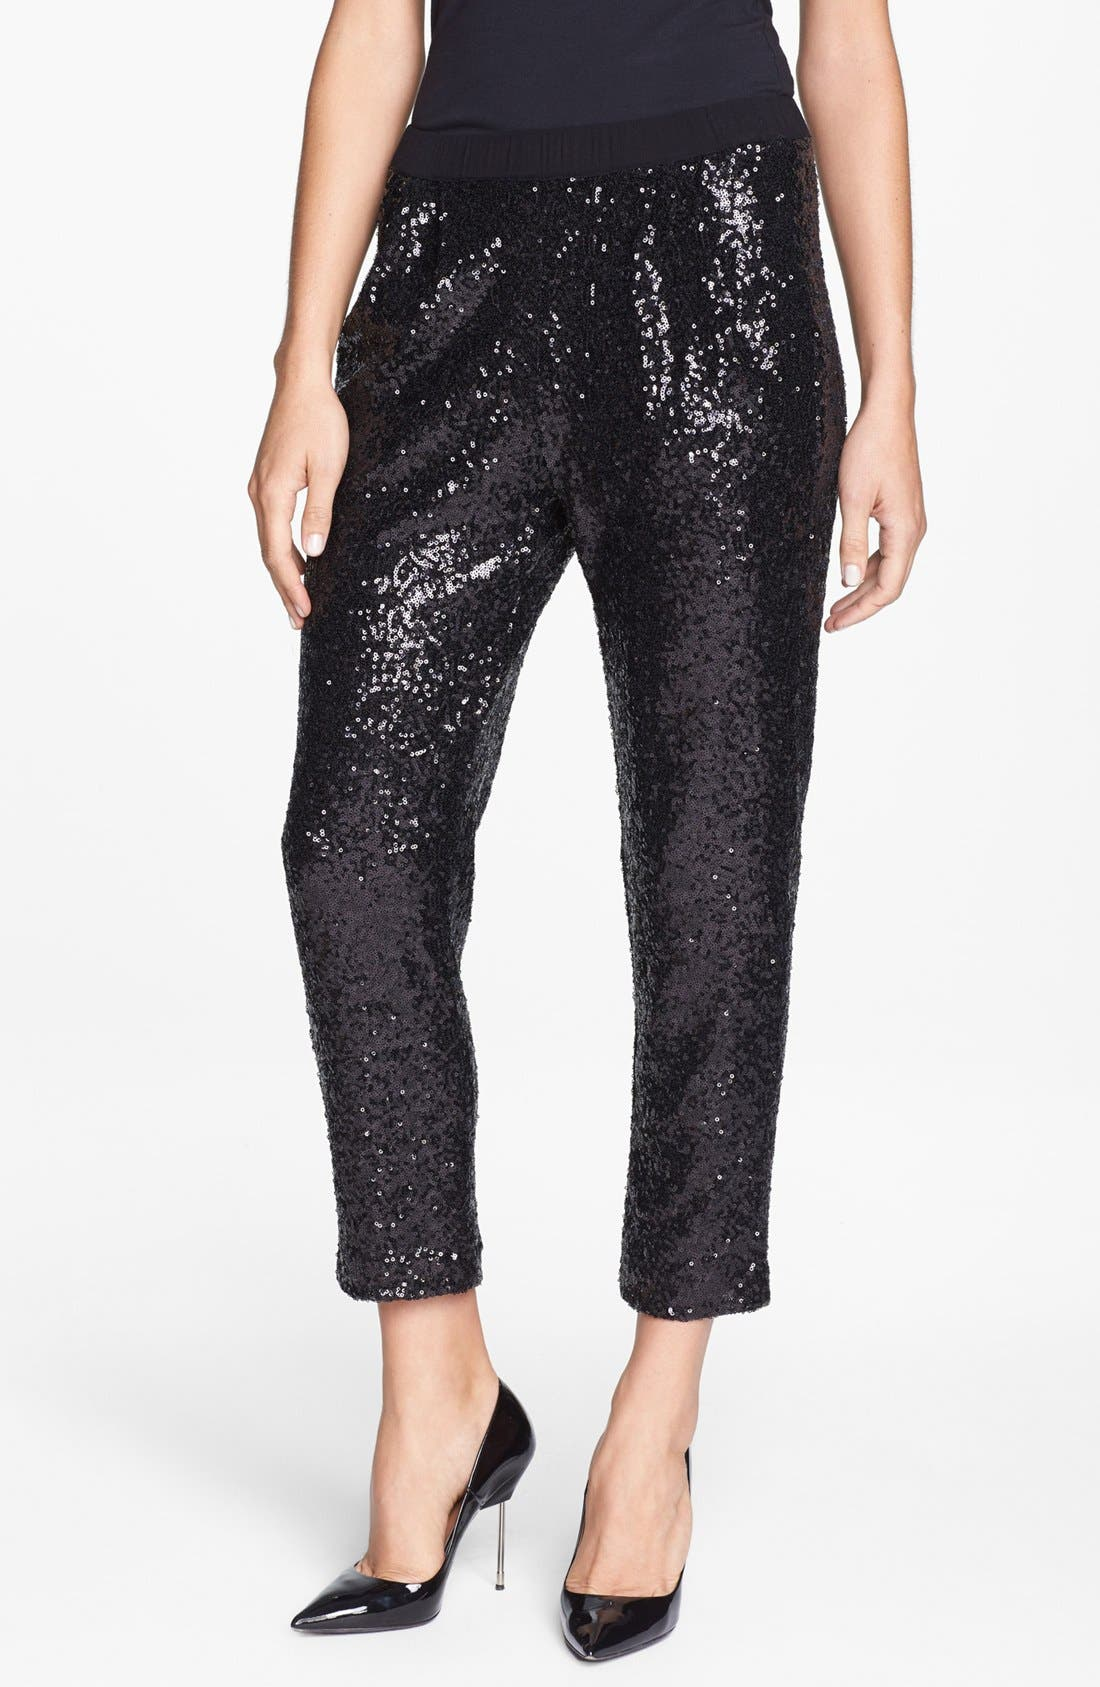 ELLA MOSS, Sequin Slouchy Trousers, Main thumbnail 1, color, 001